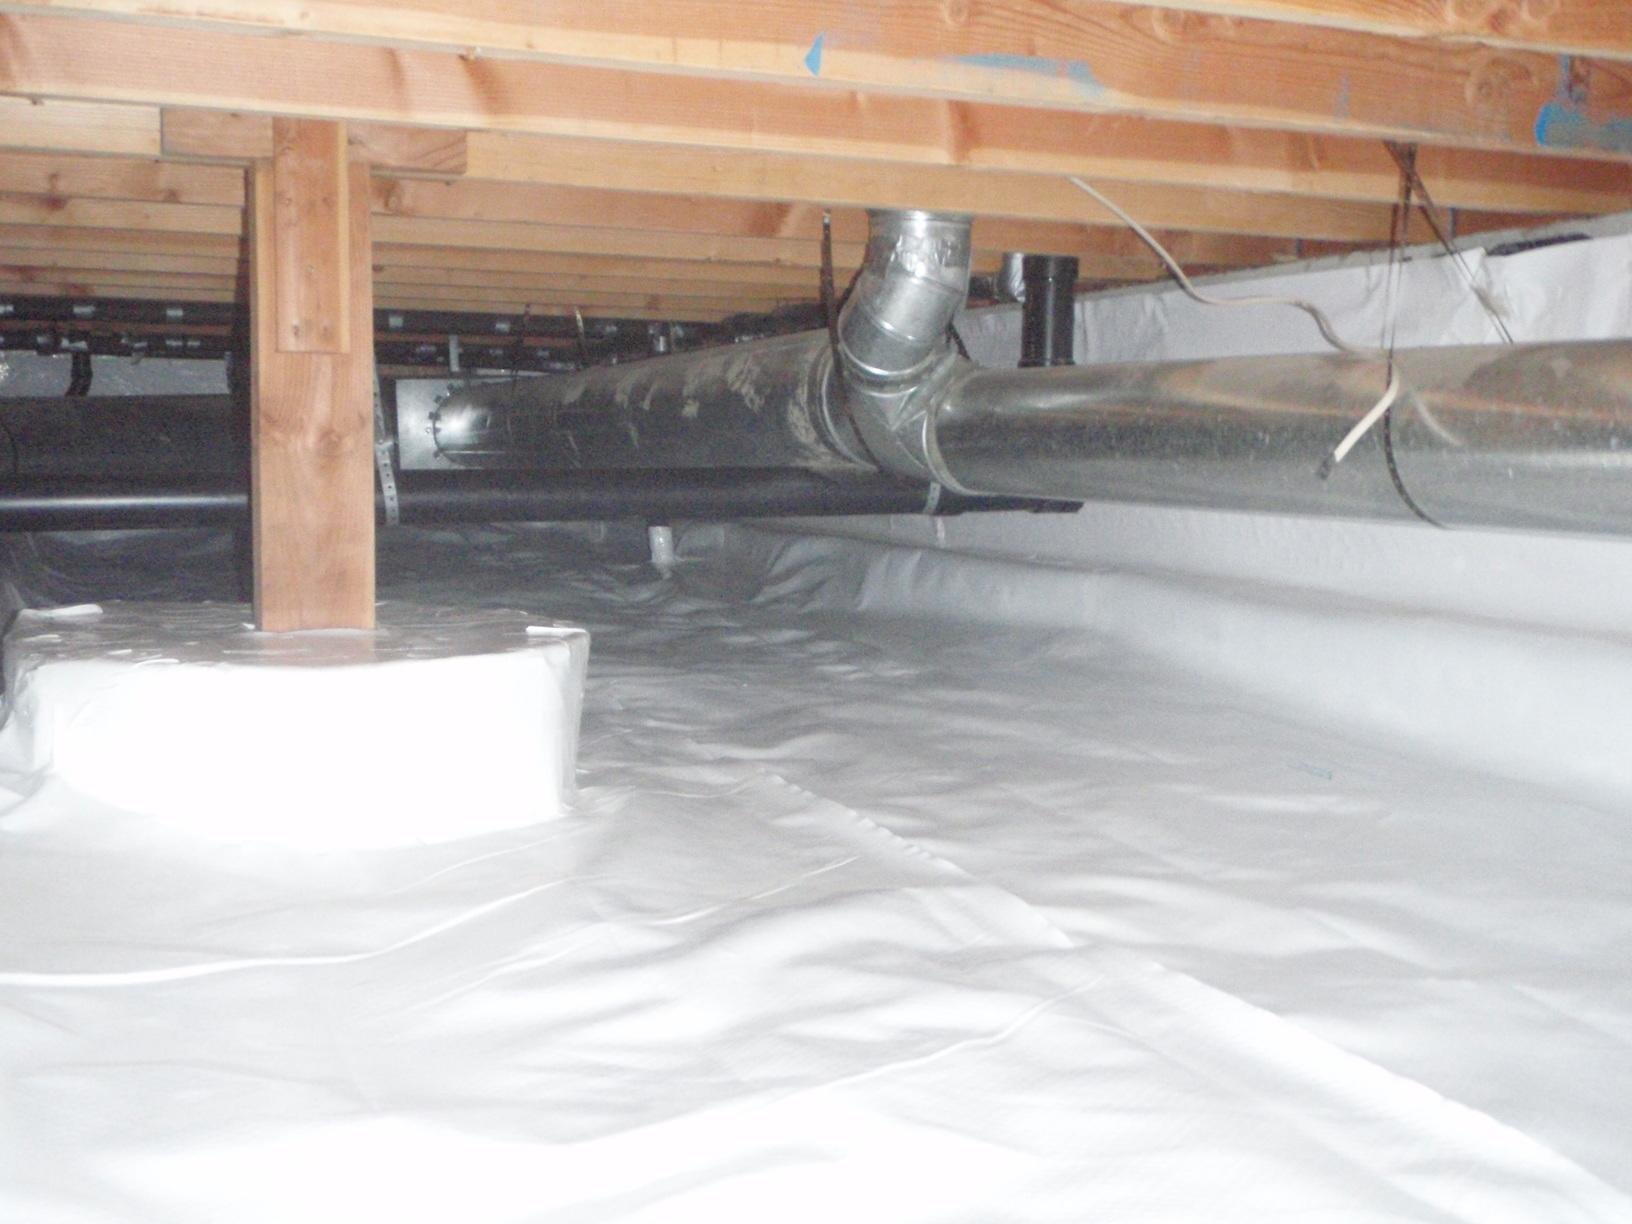 The Bow home owners were very pleased with the work we did in their crawl space